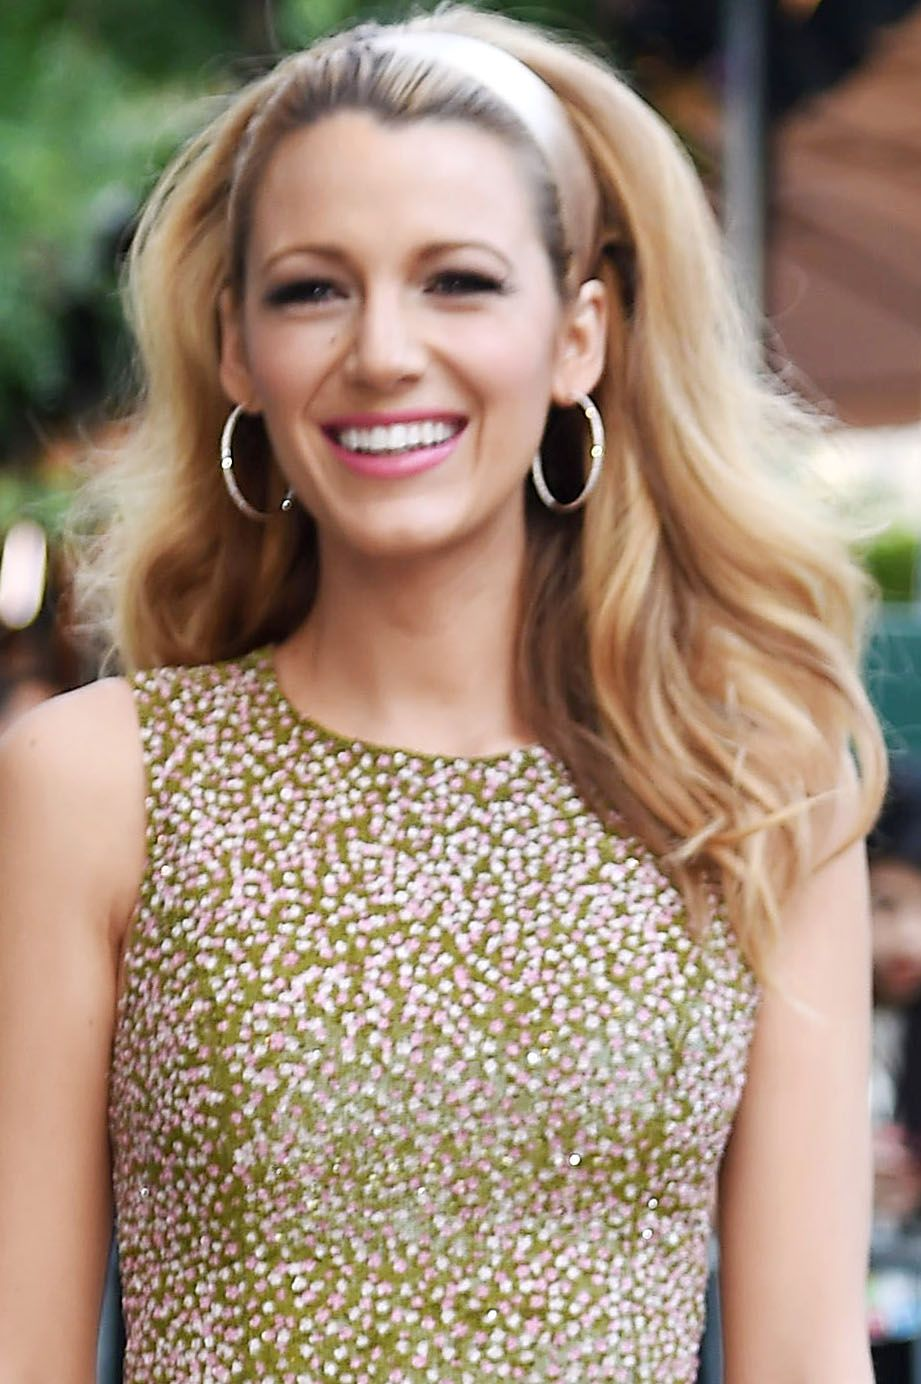 Blake livelys beauty evolution in 61 looks blake livelys best blake livelys beauty evolution in 61 looks blake livelys best hair and makeup looks urmus Image collections